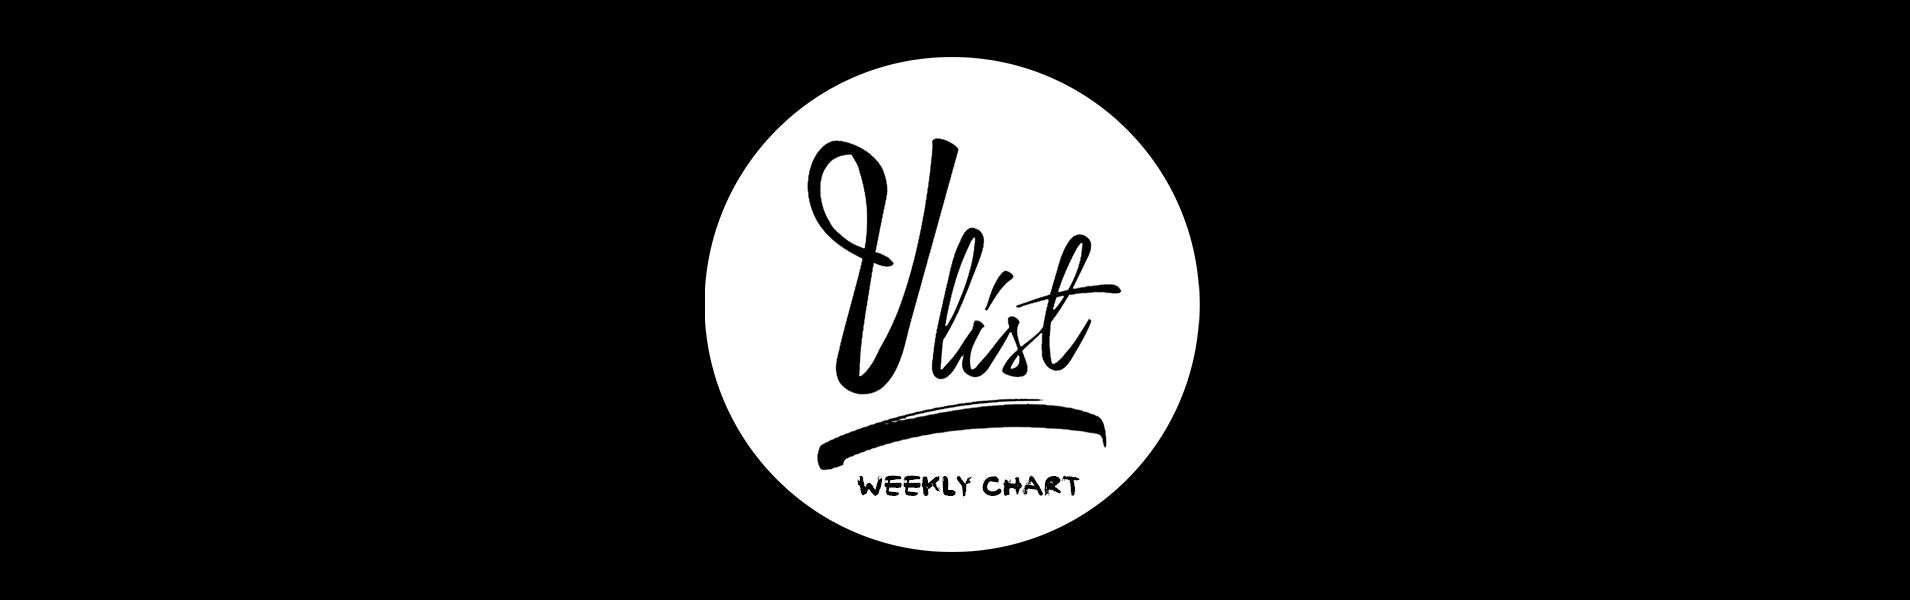 weekly chart